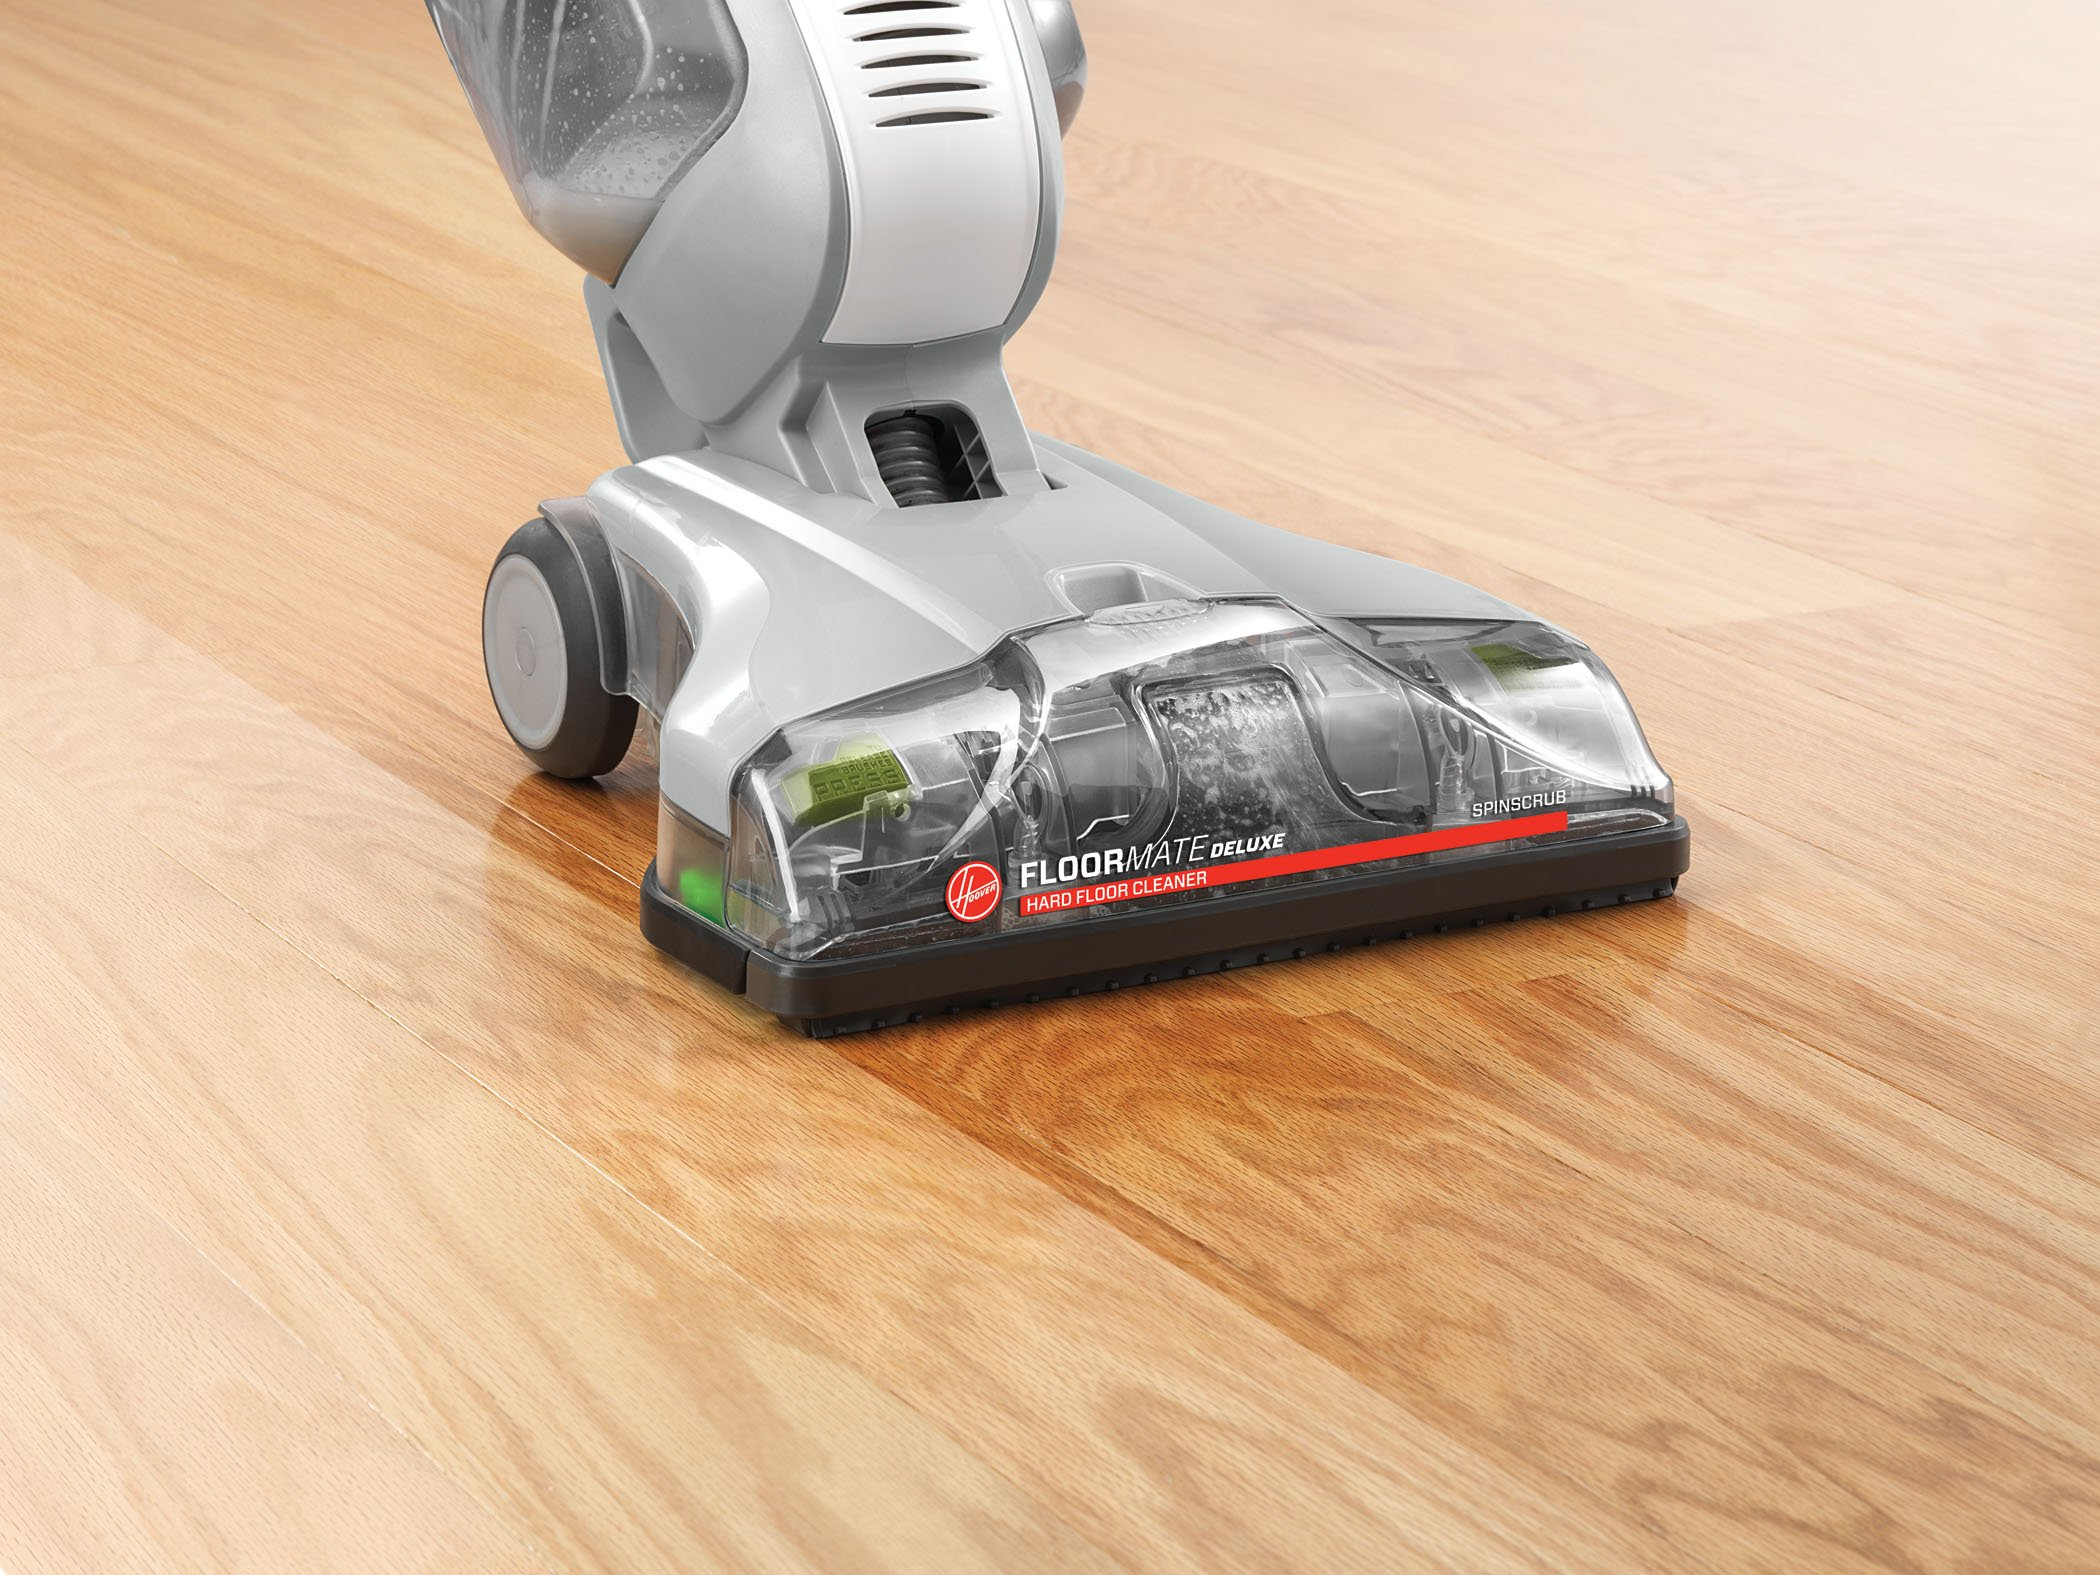 Hoover Hardwood Floor Cleaner FloorMate Deluxe Corded Bare Floor Cleaner with Foldable Handle FH40165 by HOOVER (Image #4)